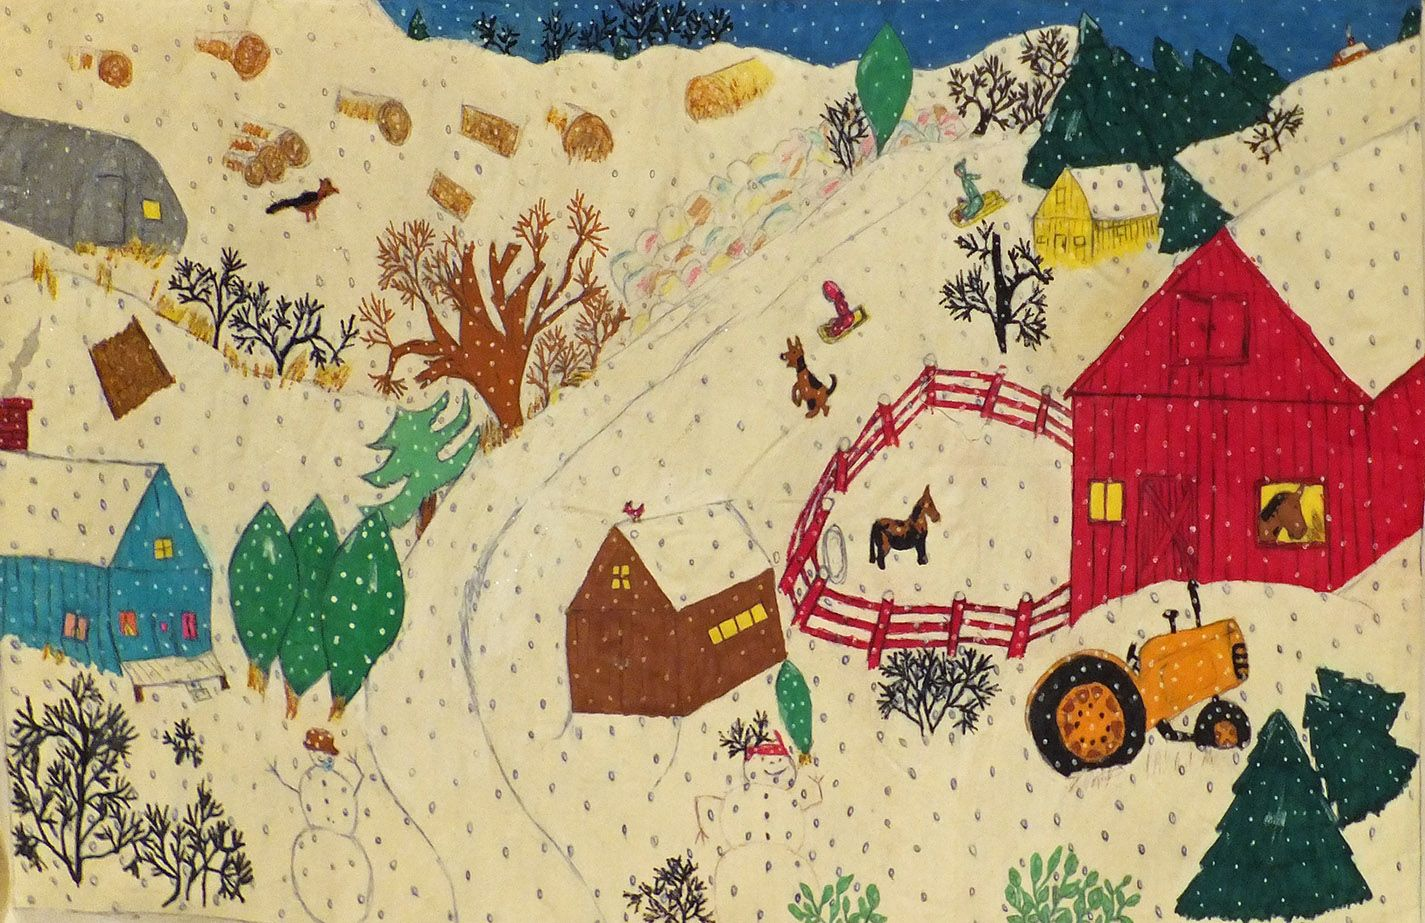 Parker Lanier The Us Outsider Artist Is One Of 99 Artists Presented On The Site Www Outsider Art Brut Ch Or Www Aussenseite Art Outsider Artists Outsider Art